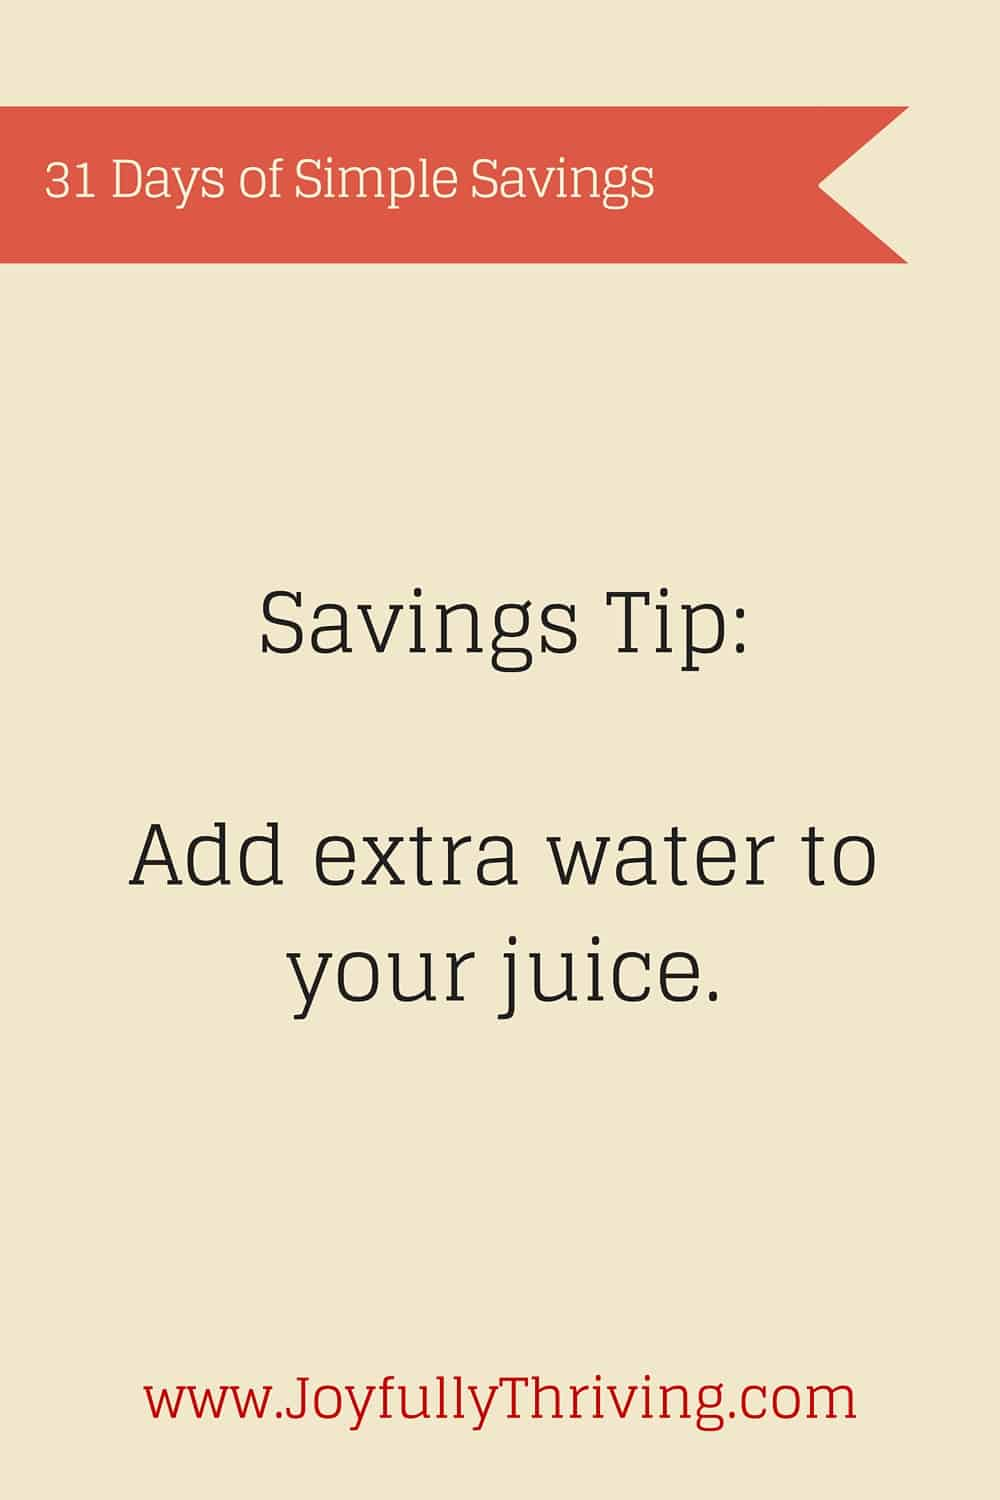 Simple Savings: Add extra water to your juice.